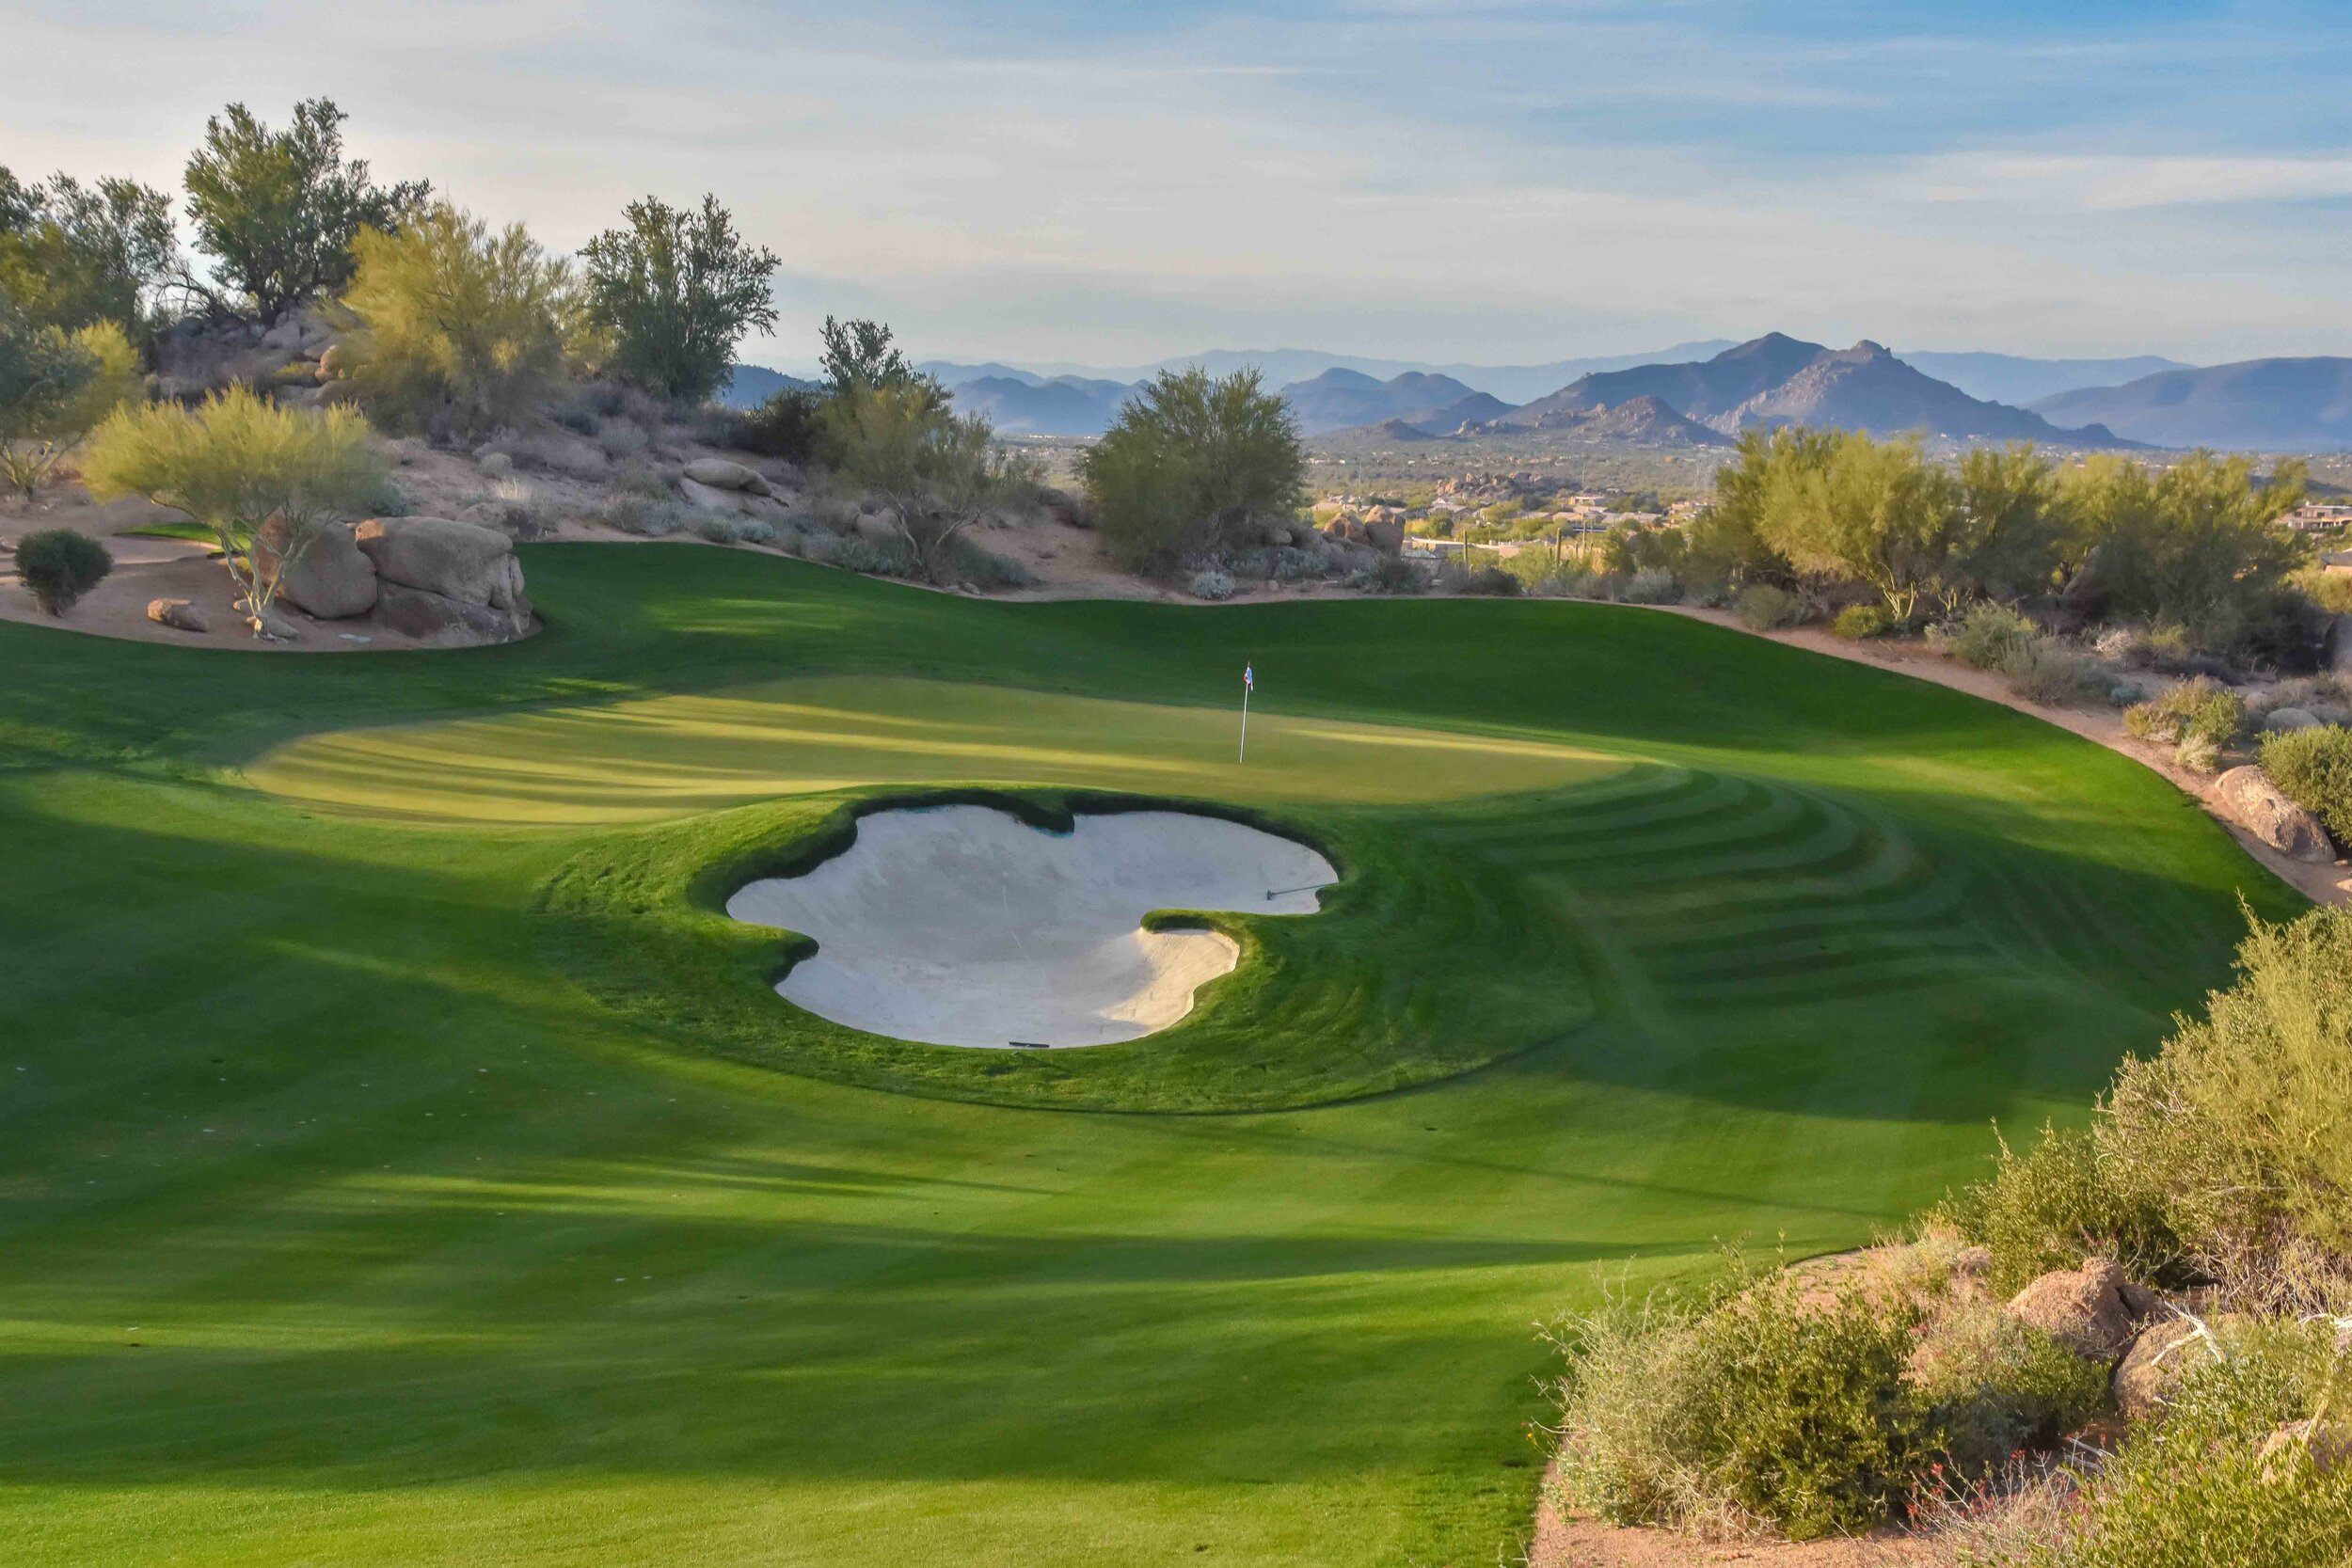 The Tom Fazio designed, Estancia Club